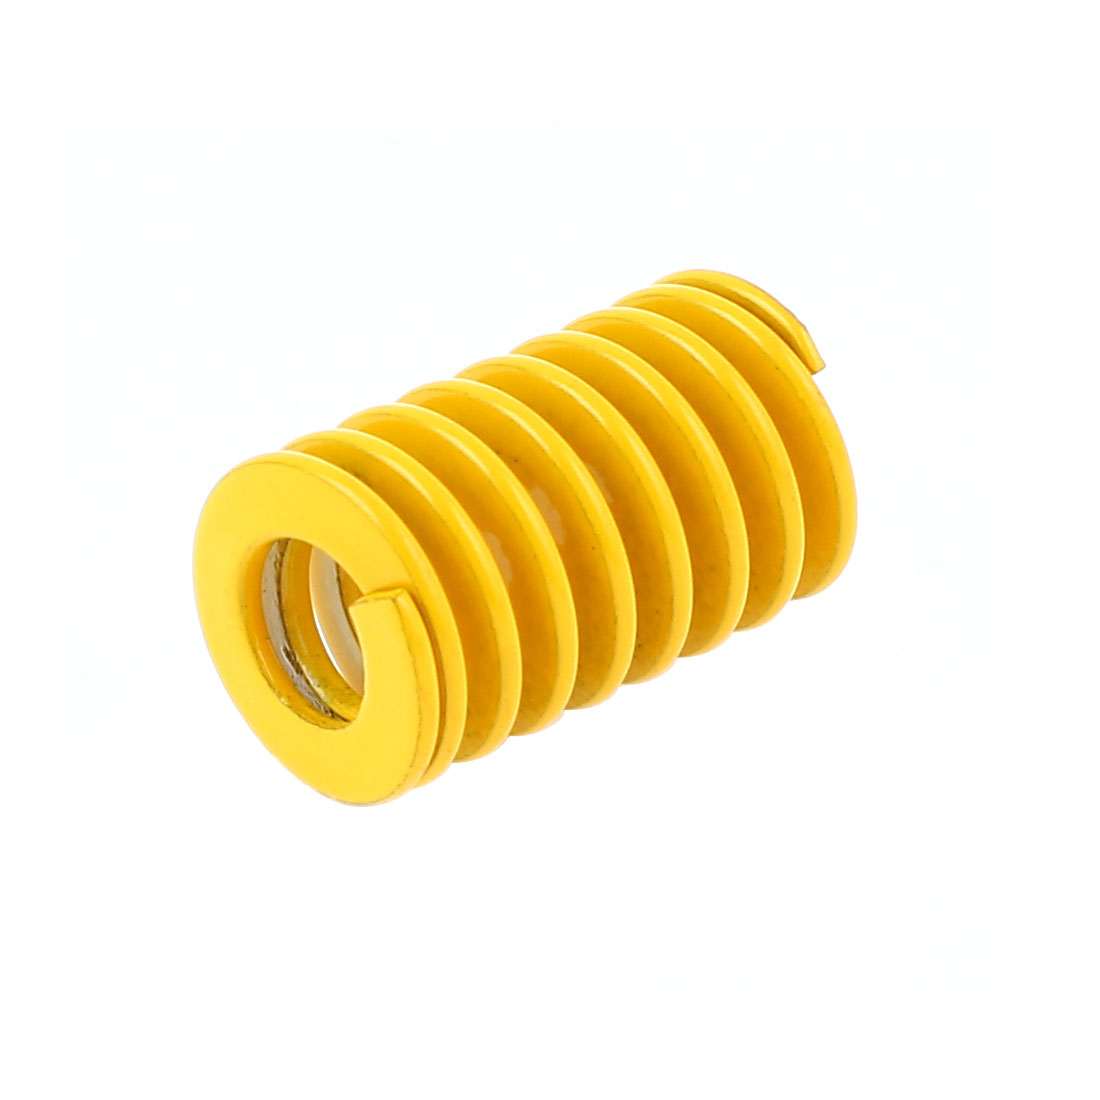 Yellow Chromium Alloy Steel Tubular Section Mould Die Spring 16x8x25mm